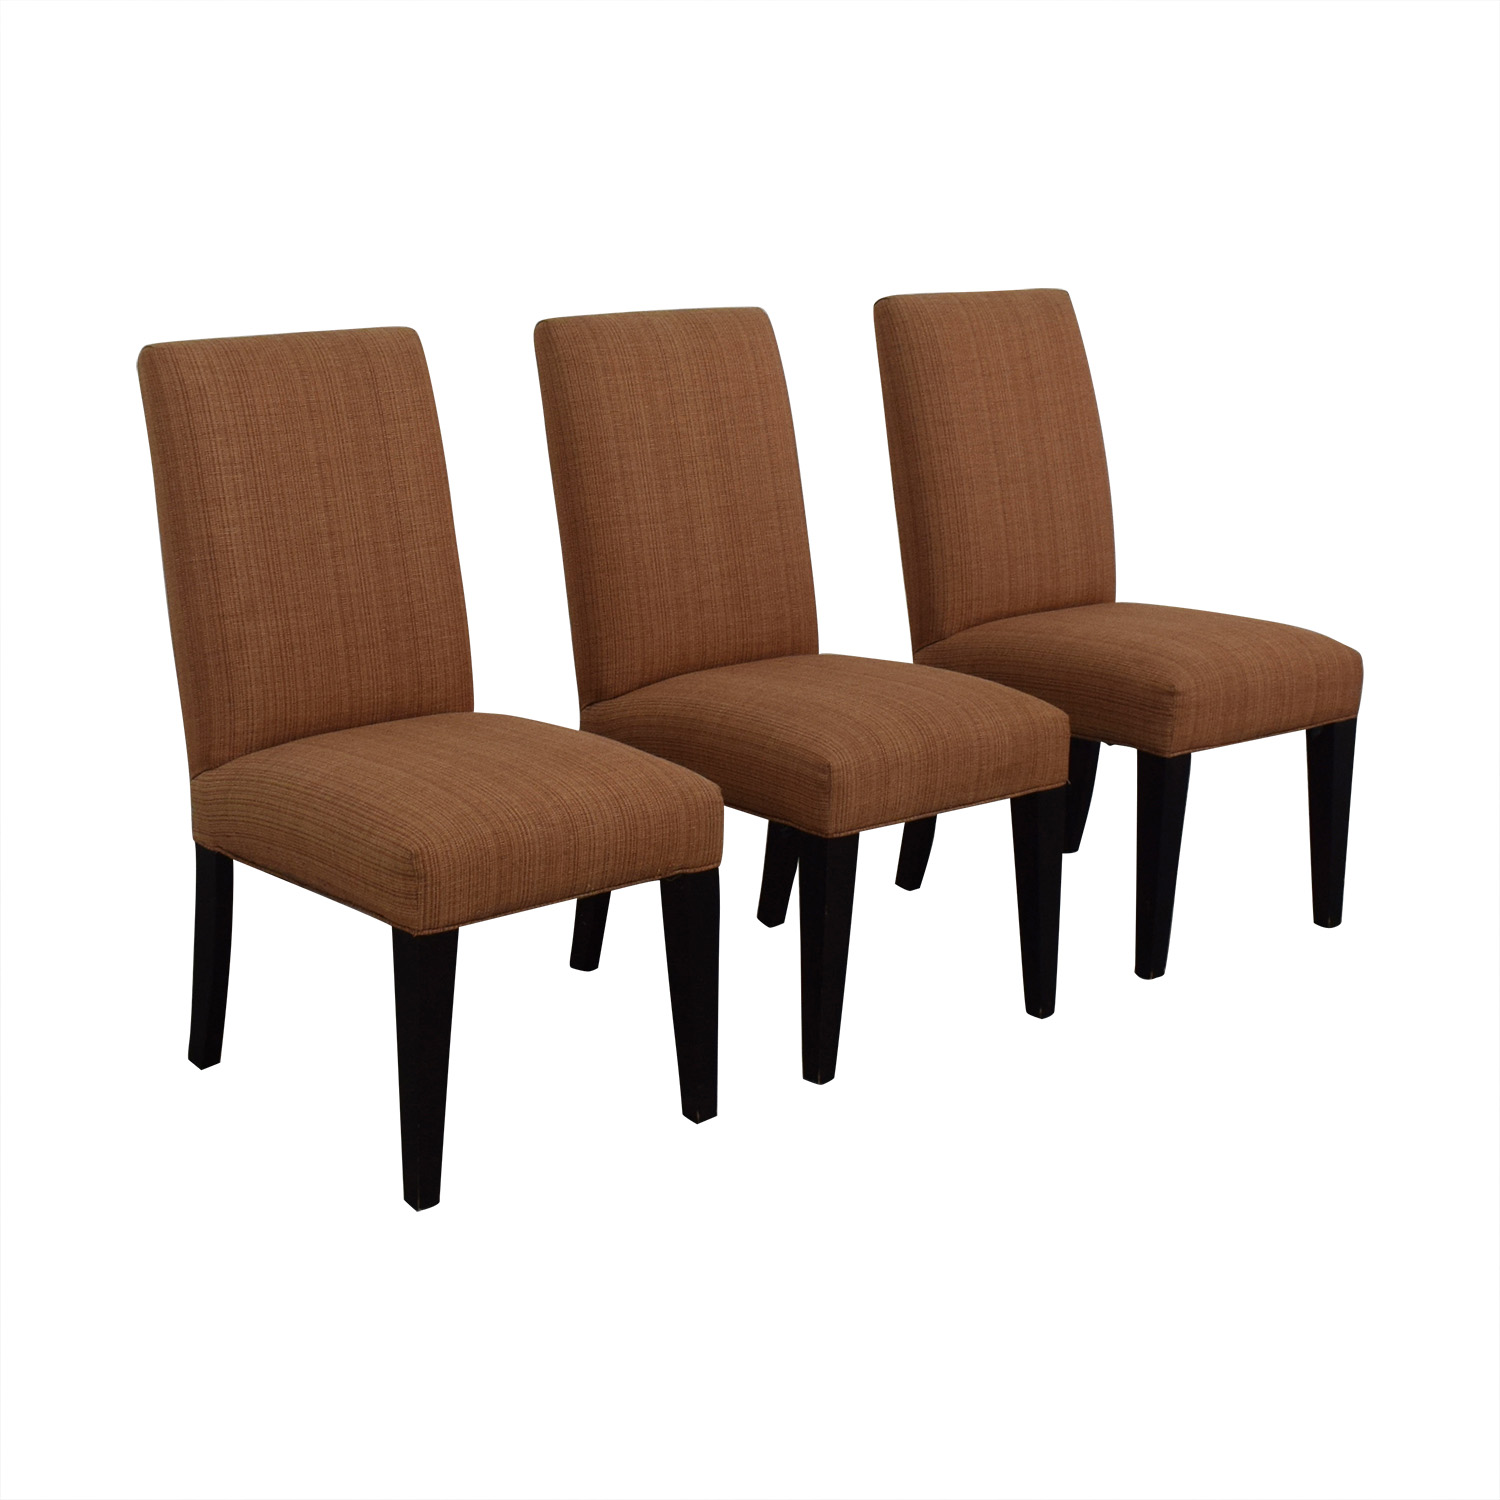 Mitchell Gold + Bob Williams Mitchell Gold + Bob Williams Anthony Side Chairs on sale